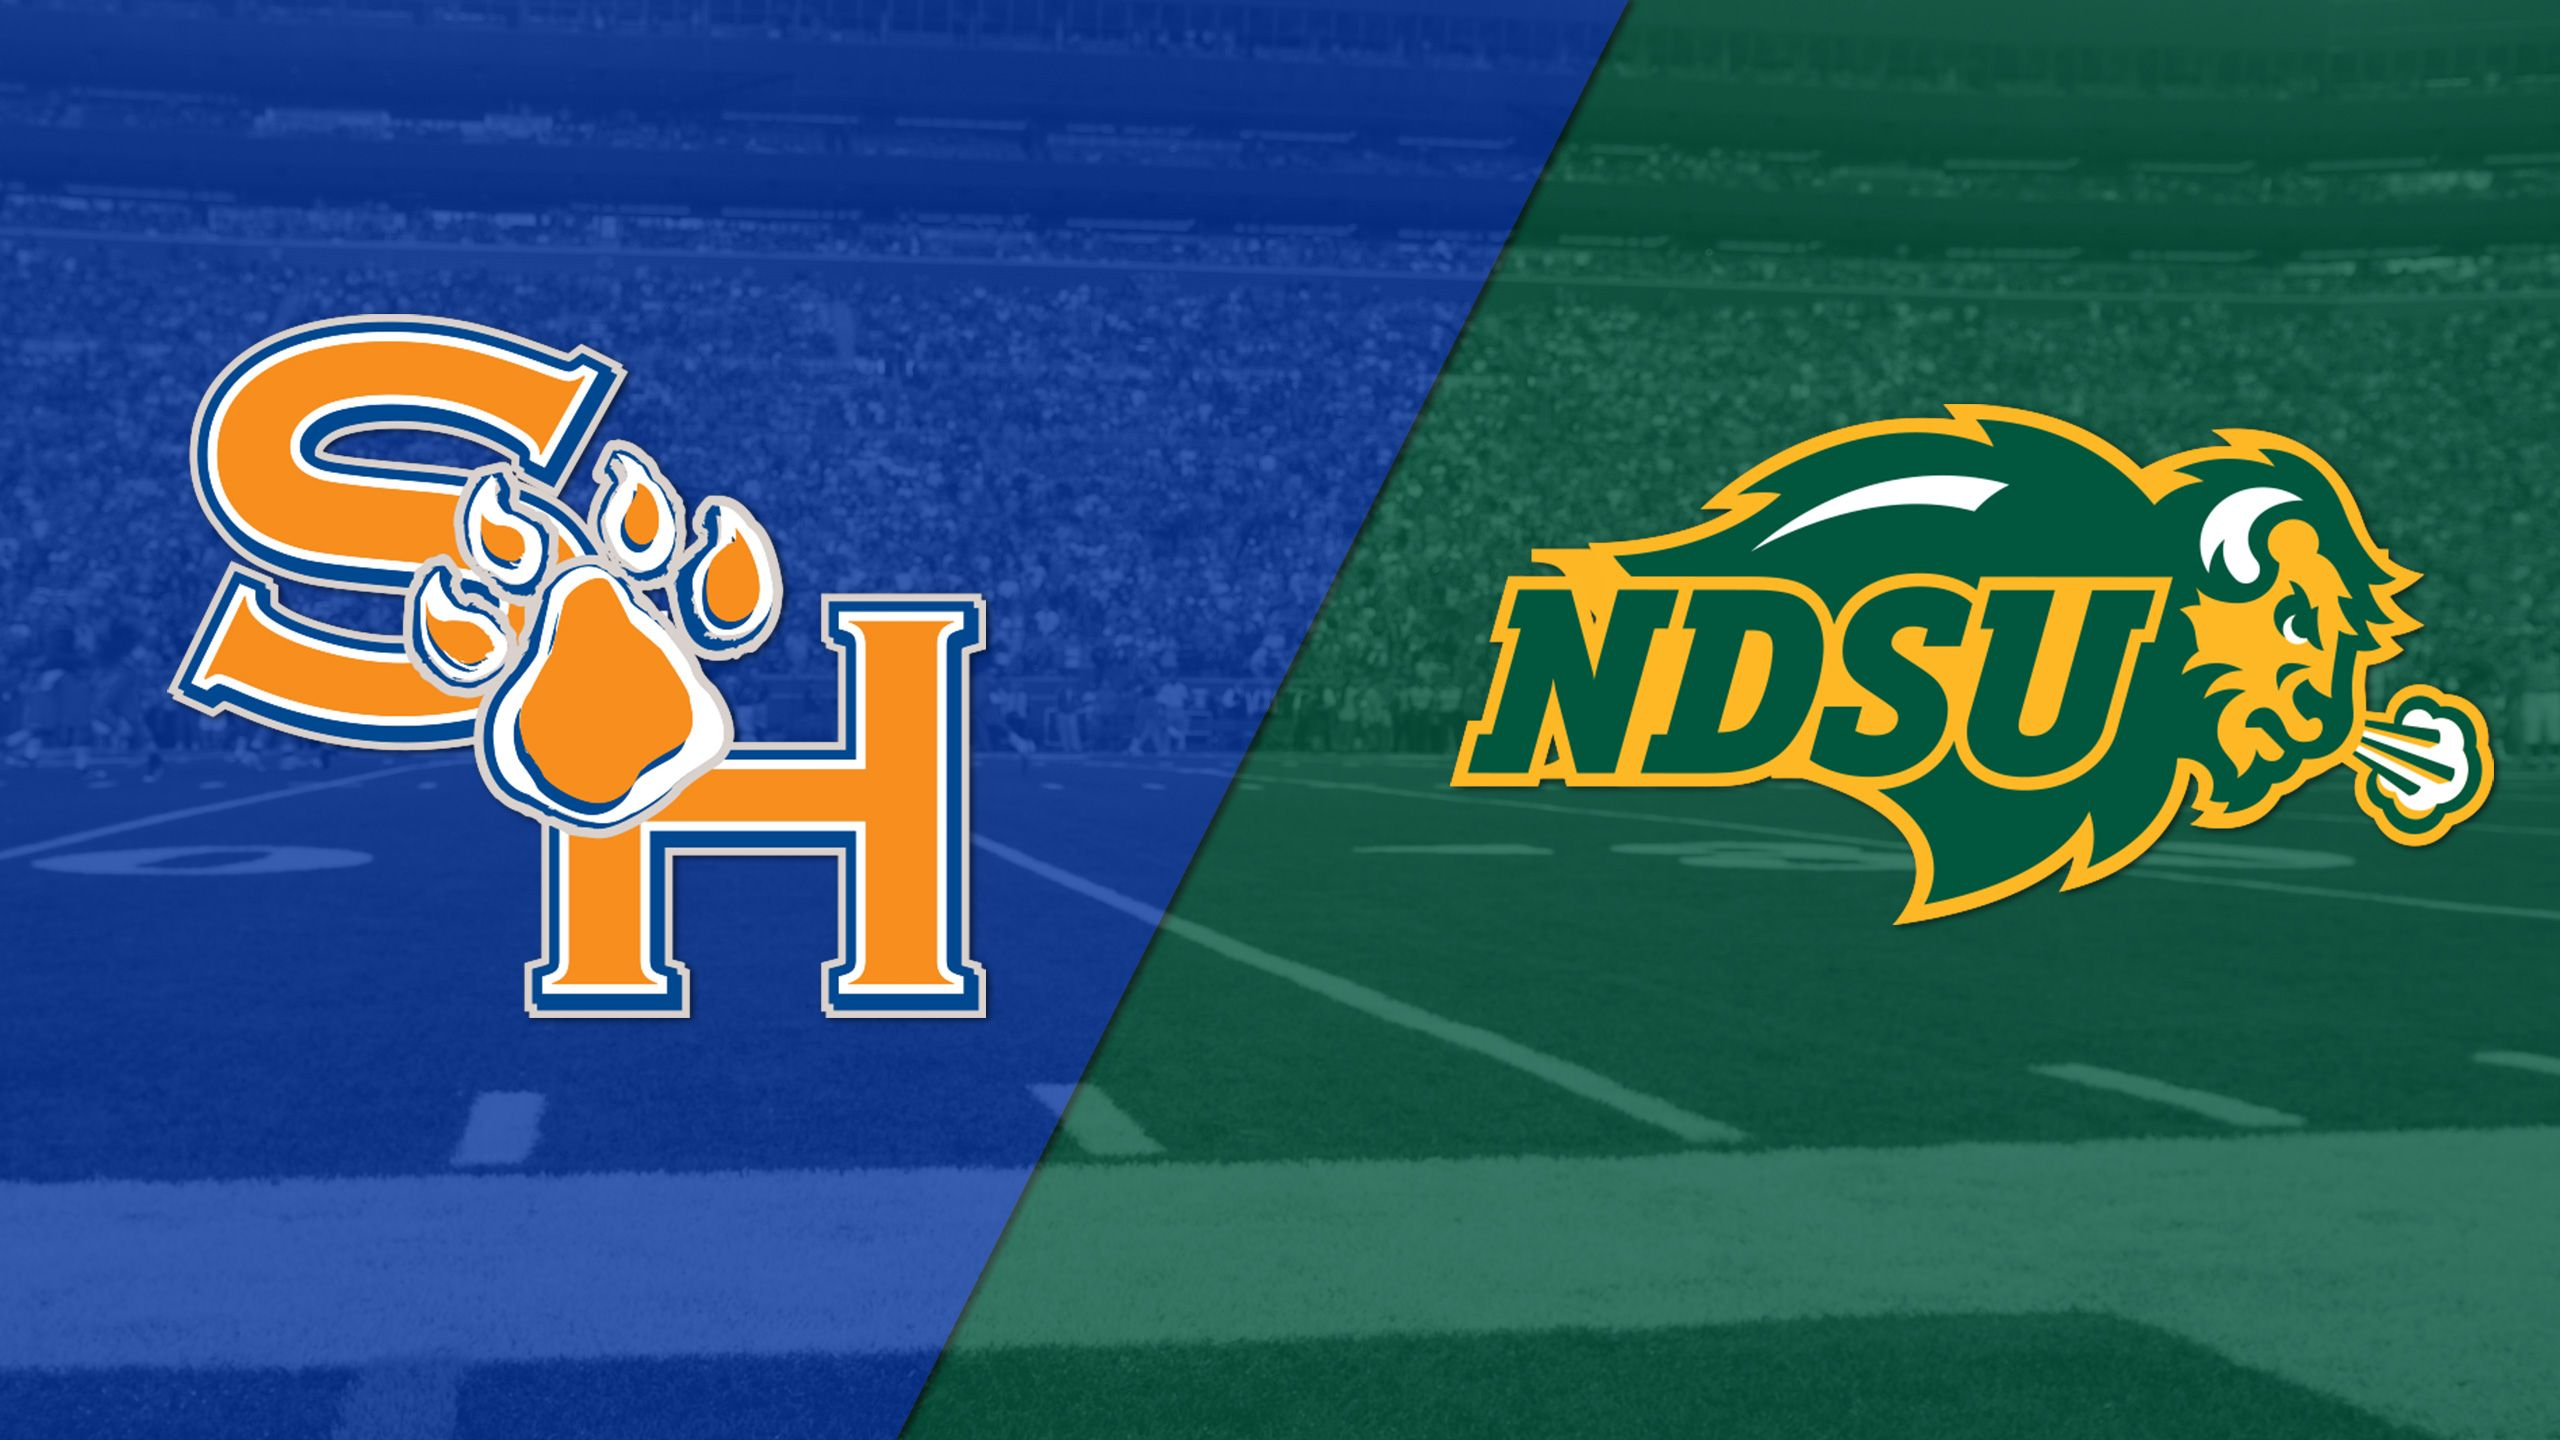 Sam Houston State vs. North Dakota State (Semifinal #1) (NCAA Division I FCS Football Championship)